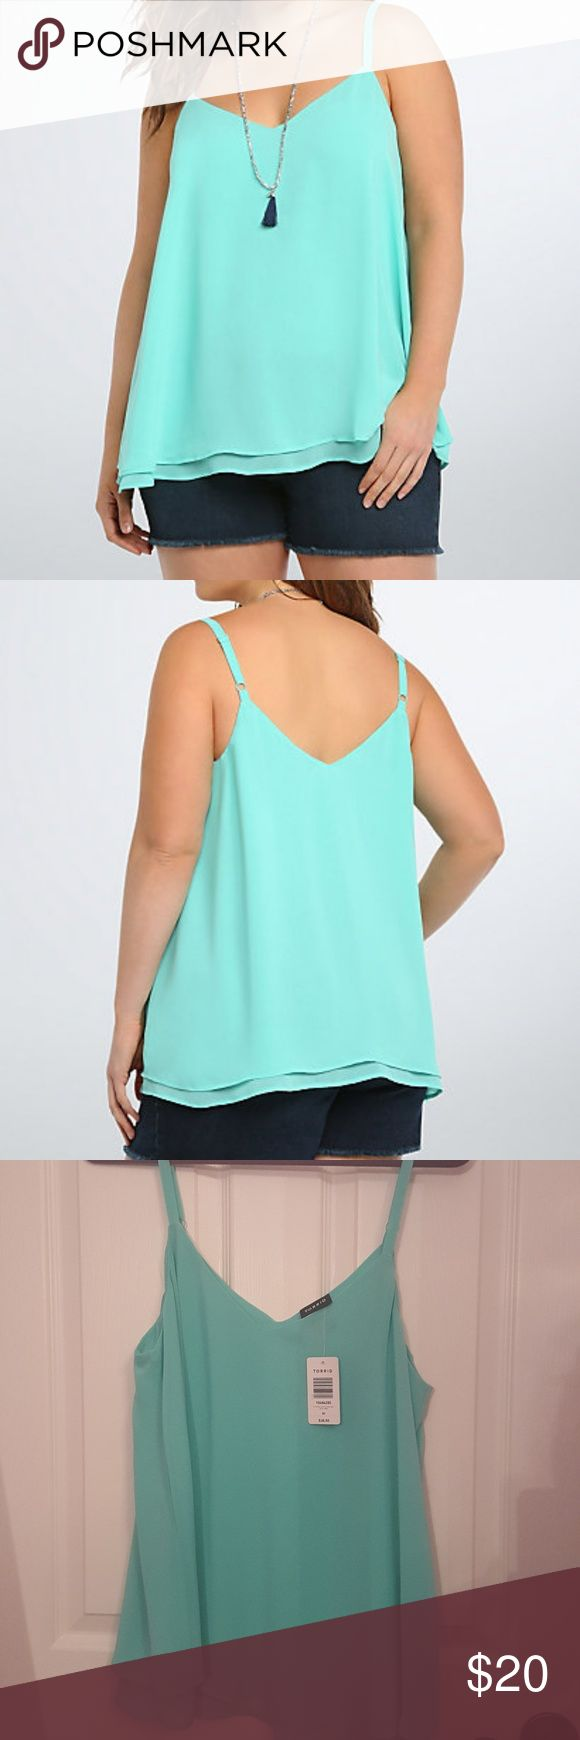 Torrid chiffon top size 00 new with tags This mint green cami is doubling down with a sexy v-cut front and back. Cut with two floaty, semi-sheer, and swingy chiffon layers, this cami is a dressy upgrade from your everyday tanks. Torrid Tops